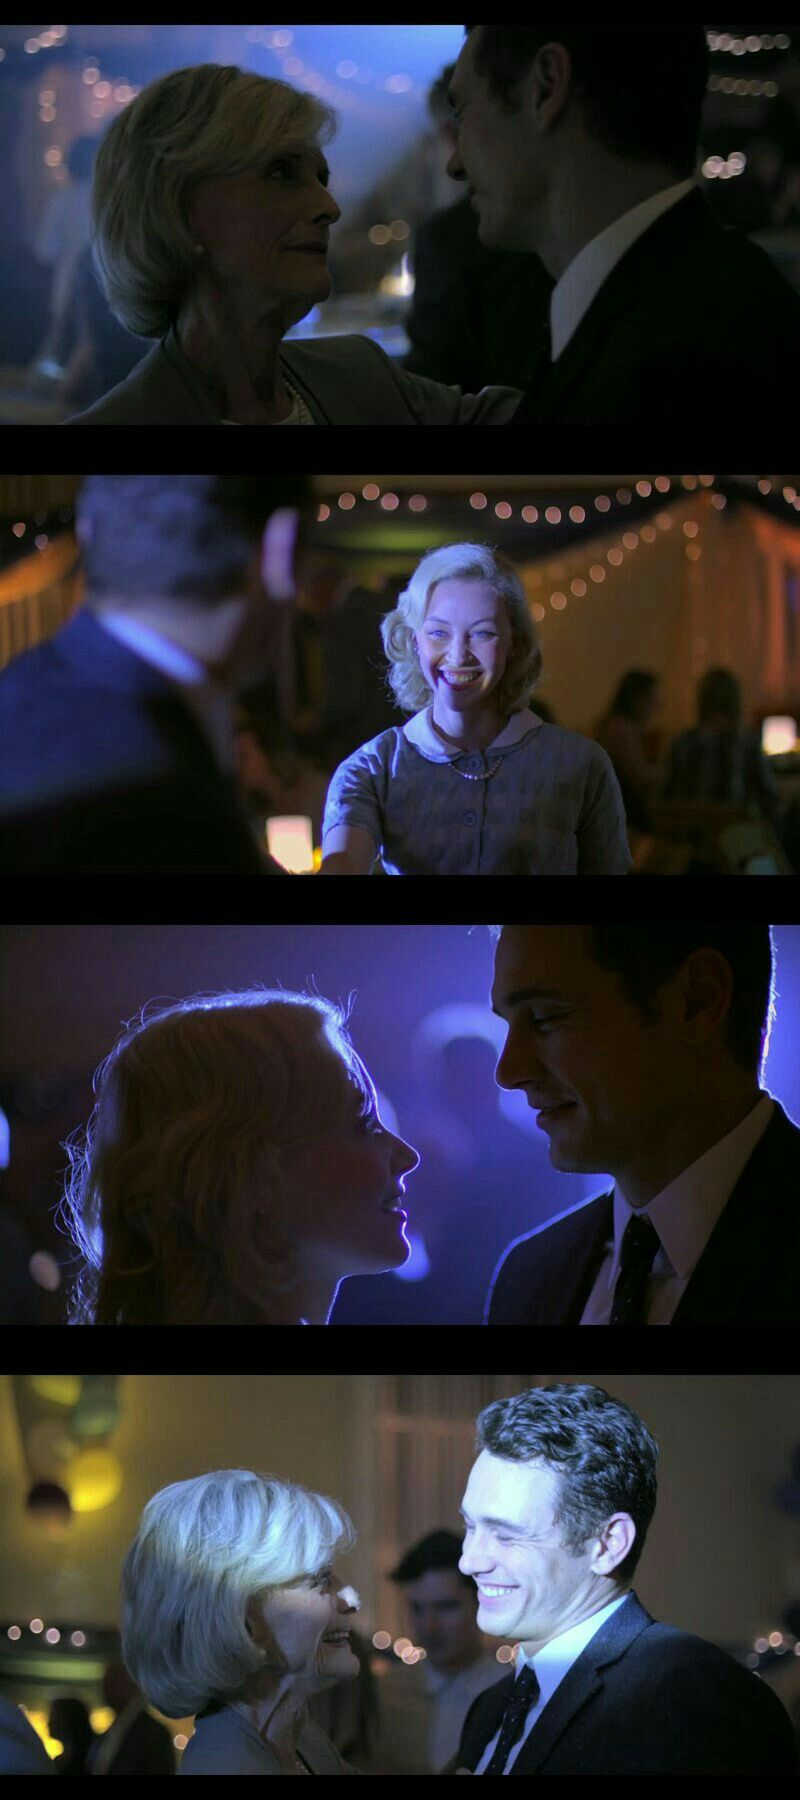 11.22.63   Jake Epping: Did you have a happy life? Sadie Dunhill: Well, I do work that matters. I love all the people in my life. I have a dog. My life has had its challenges, but, yes, yes, I am very happy. Why do you ask? Jake Epping: You seem like you deserve it. Sadie Dunhill: I swear I know you. Who are you? Jake Epping: Just someone you knew in another life.